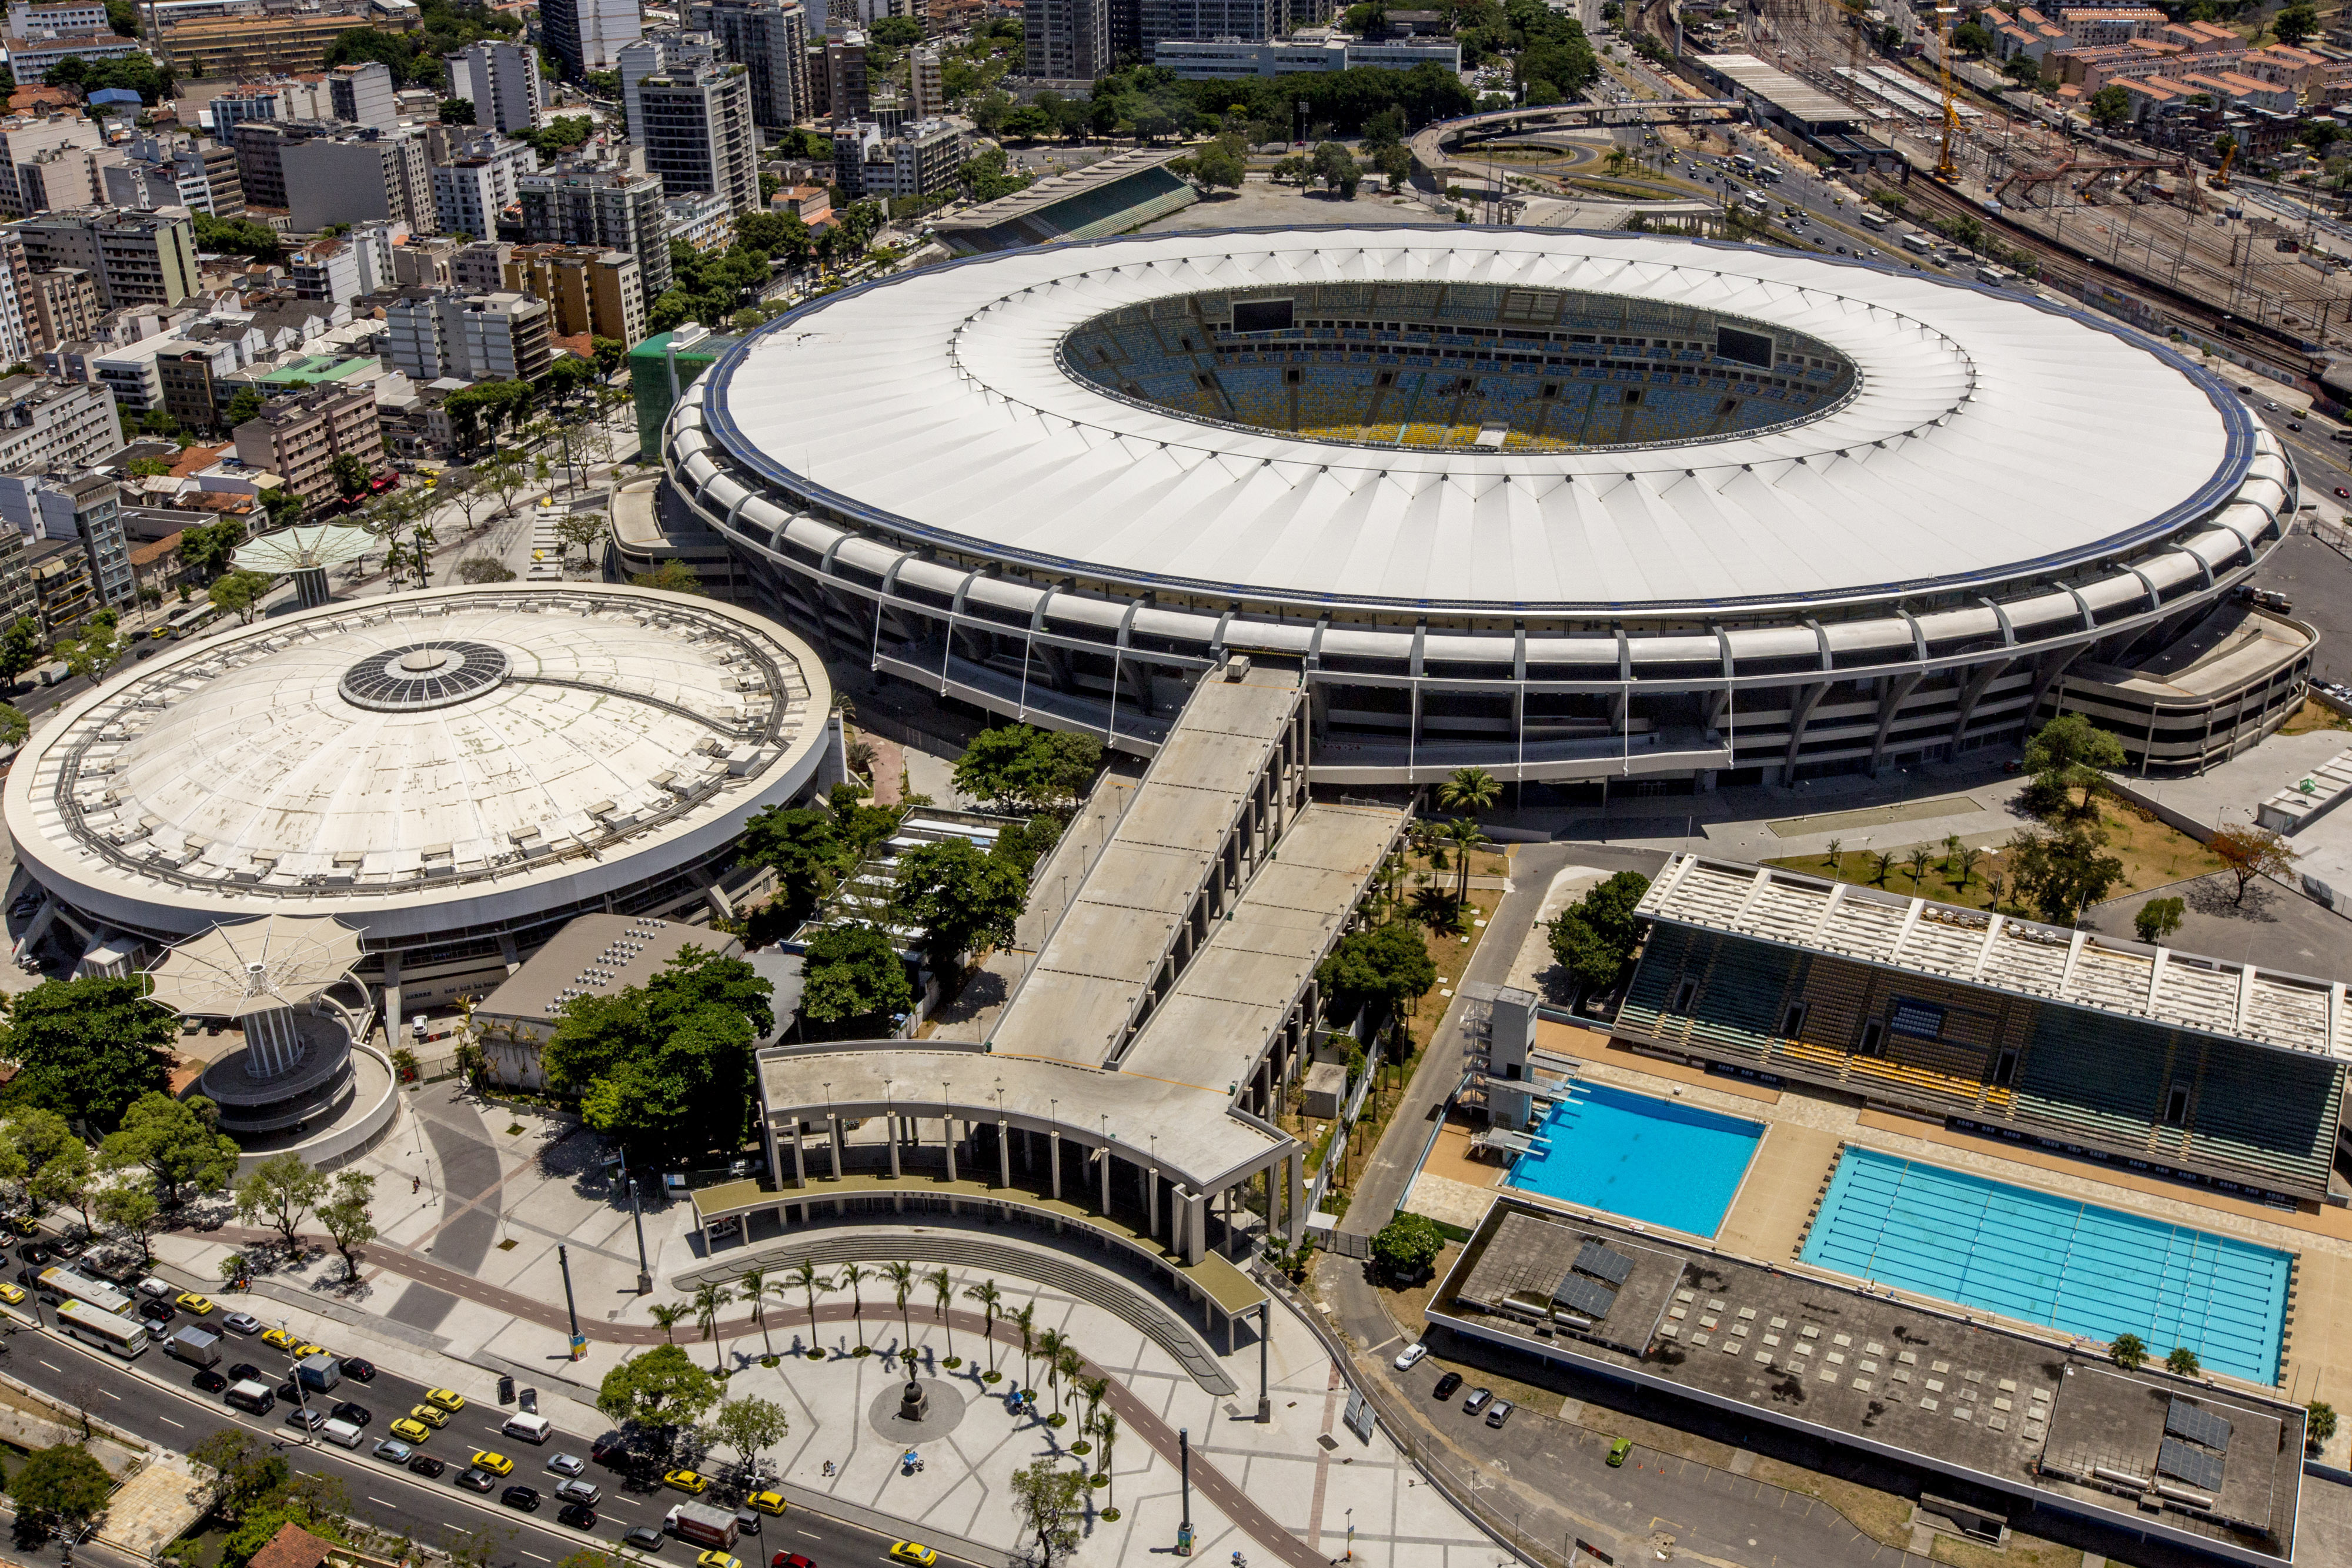 Maracanã stadium, one of the venus chosen for some of the 2016 Olympic games in Rio de Janiero, Brazil. (credit: Photo Courtesy of Daniel basil via Wikimedia Commons.)